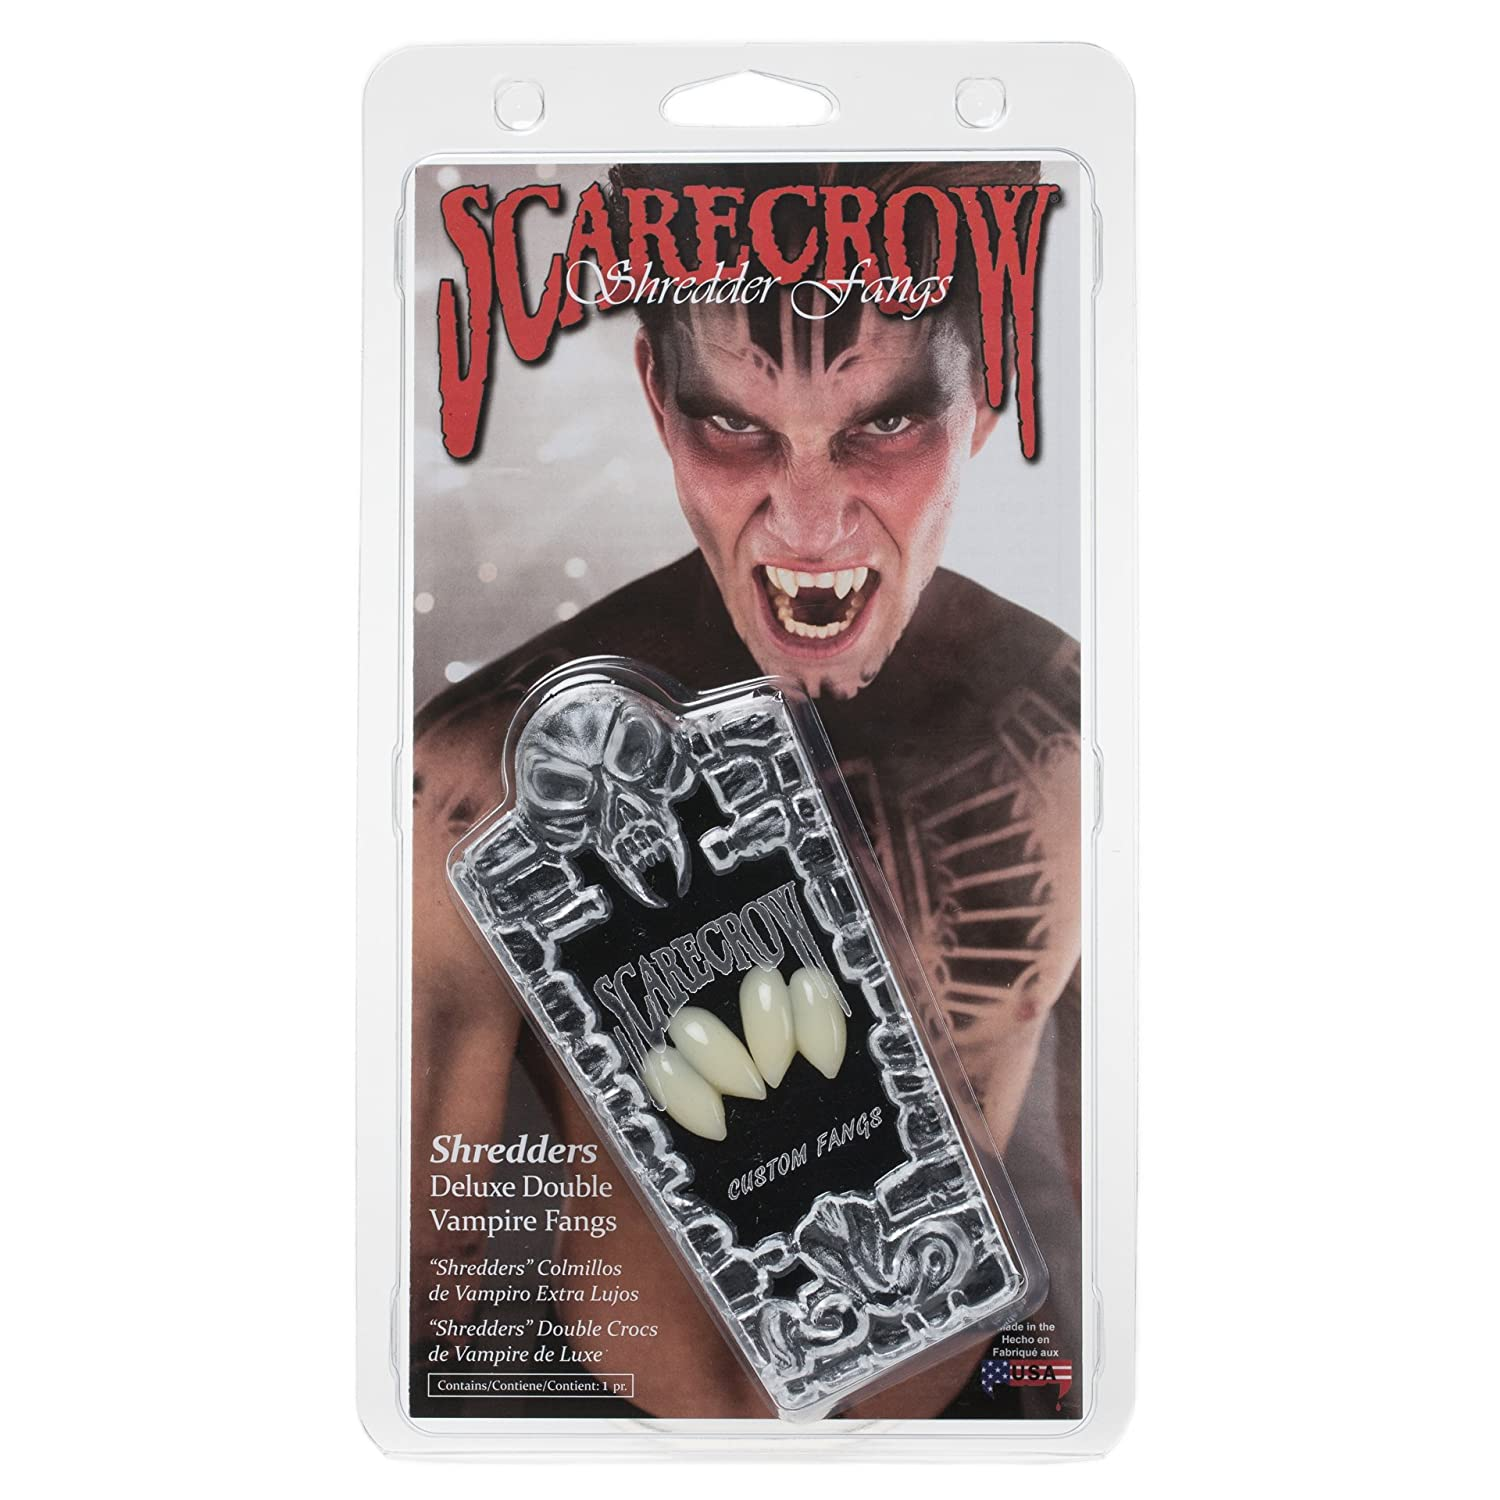 Scarecrow Shredders Double Vampire Fangs Getting Fit 611398362221